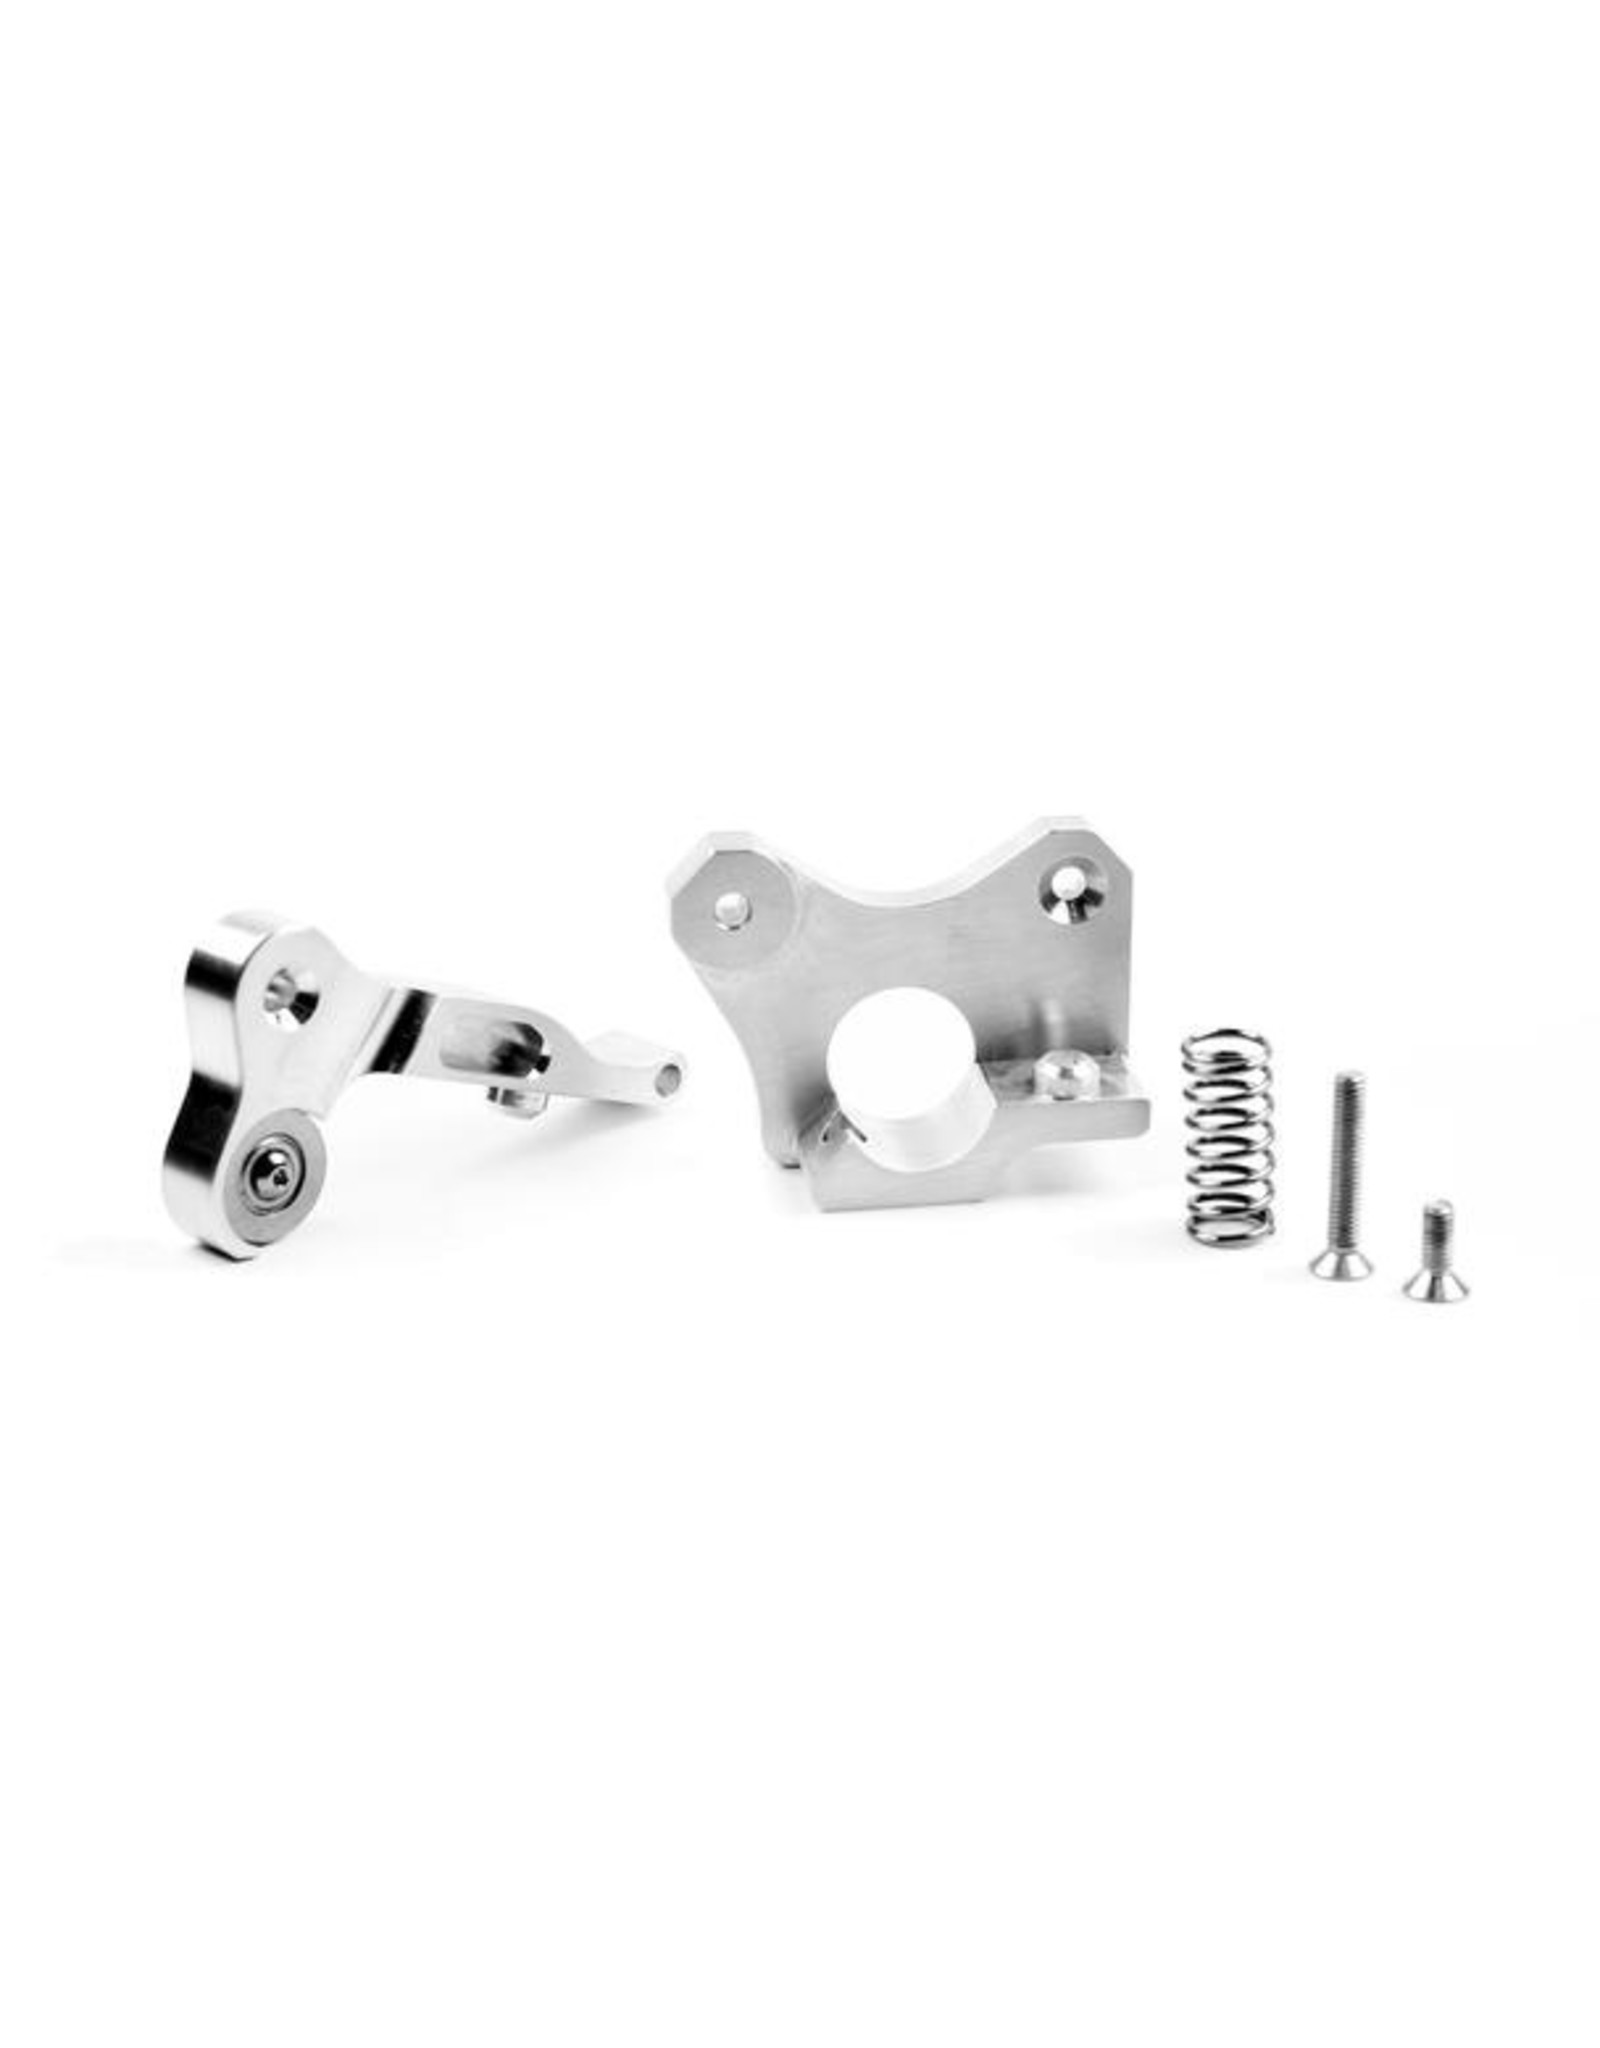 Micro Swiss Micro Swiss CNC Machined Lever voor Wanhao i3 extruder